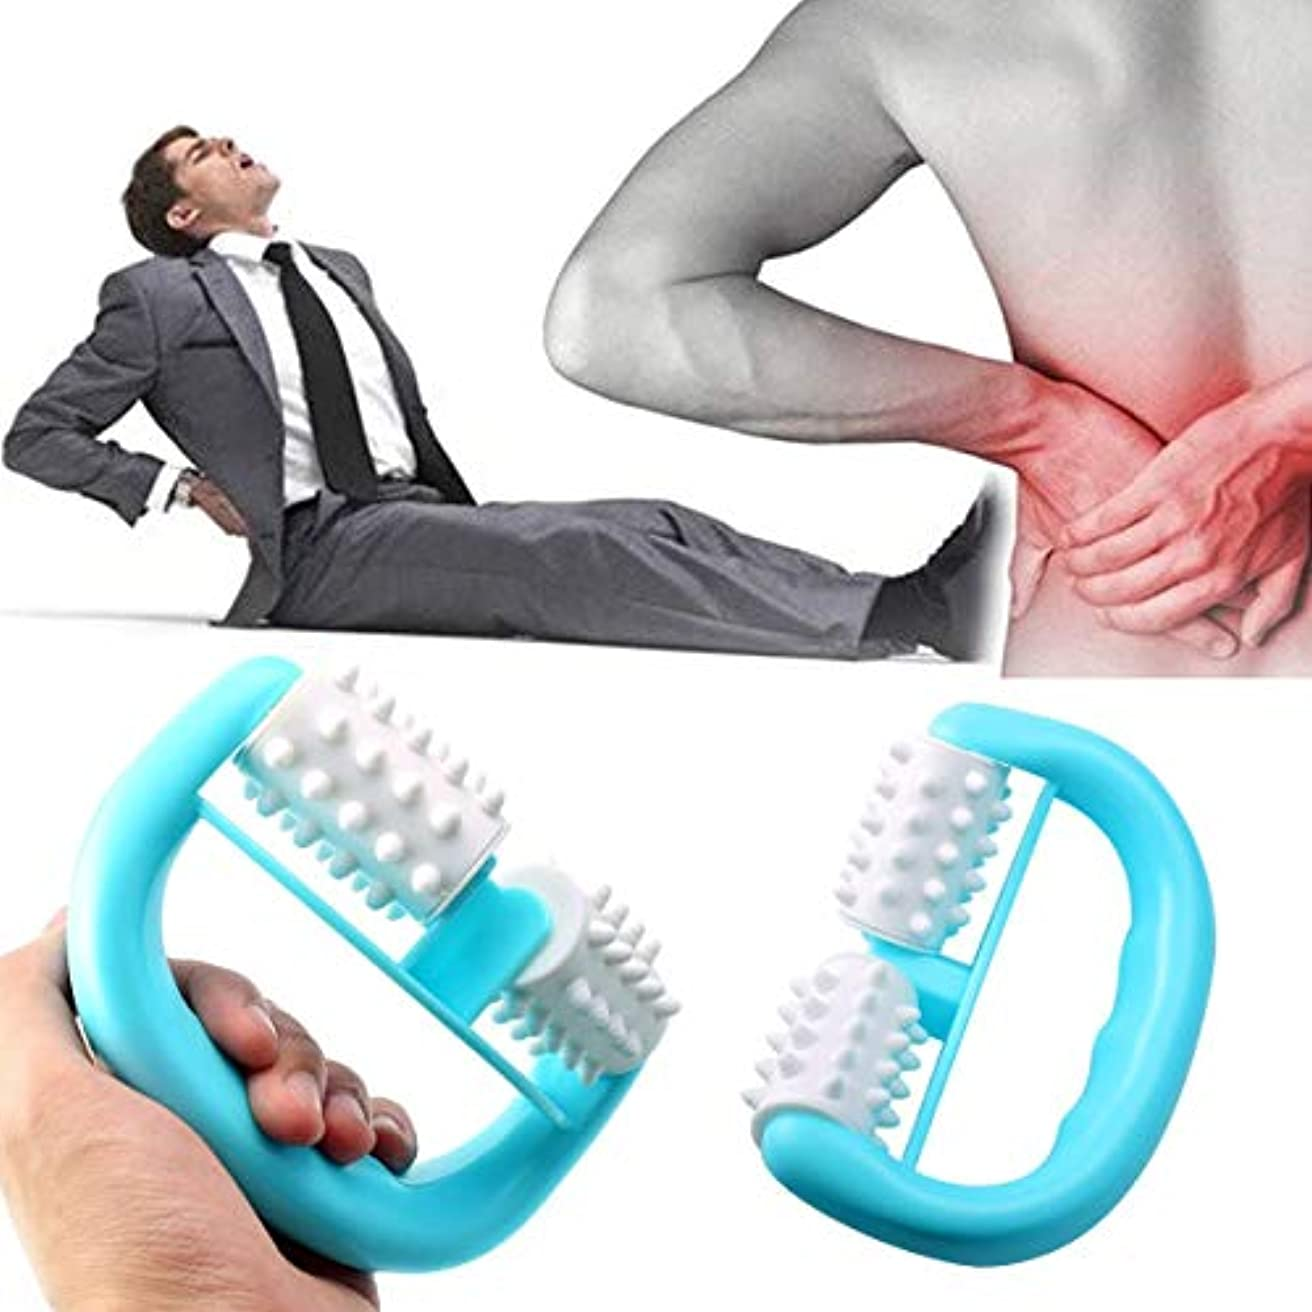 Handheld Full Body Anti Cellulite Massage Cell Roller Massager Mini Wheel Ball Foot Hand Body Neck Head Leg Pain...